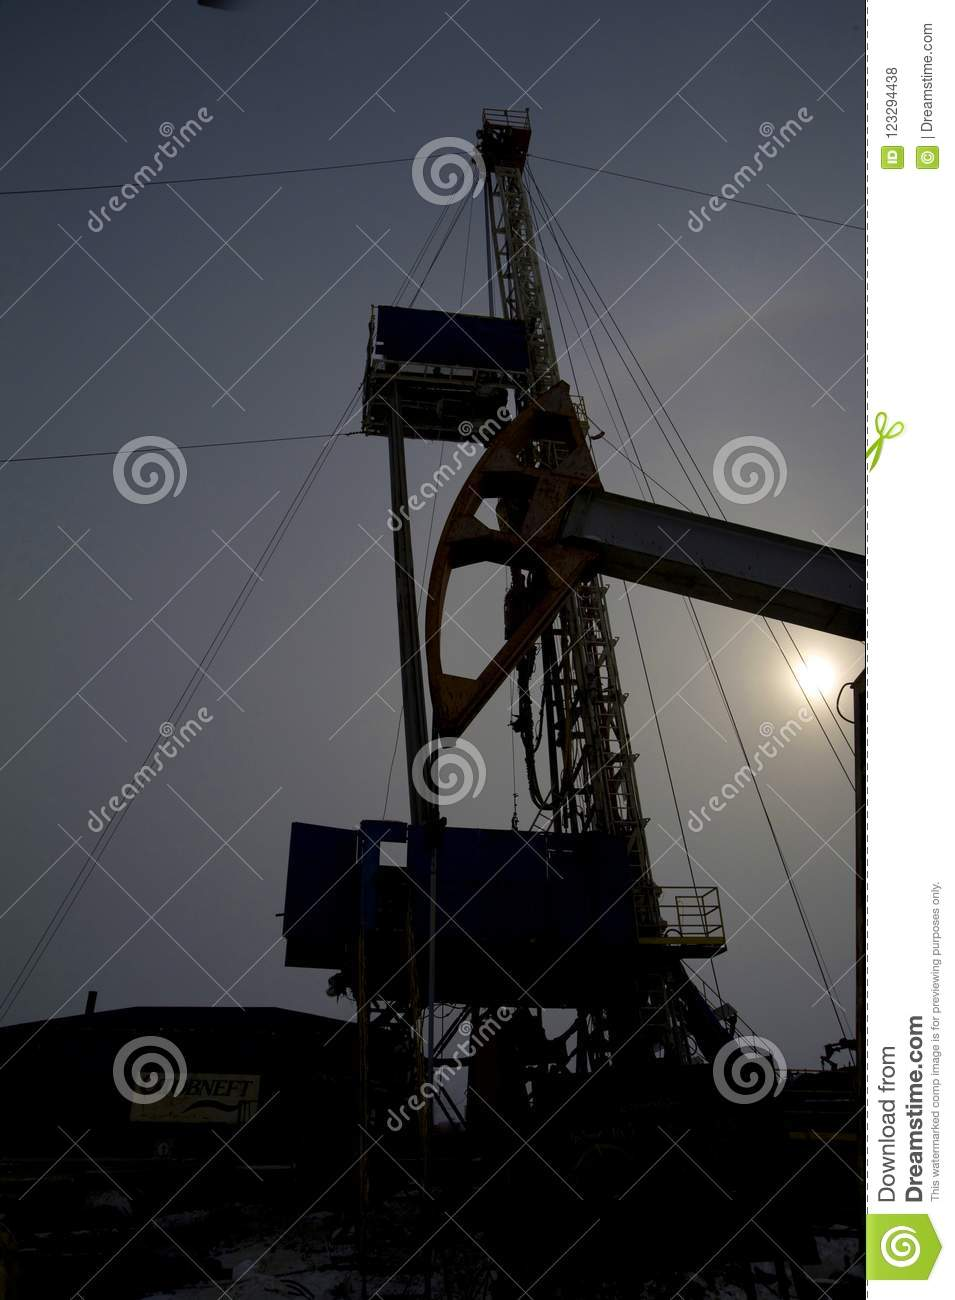 Special equipment for drilling an oil well in an oil field